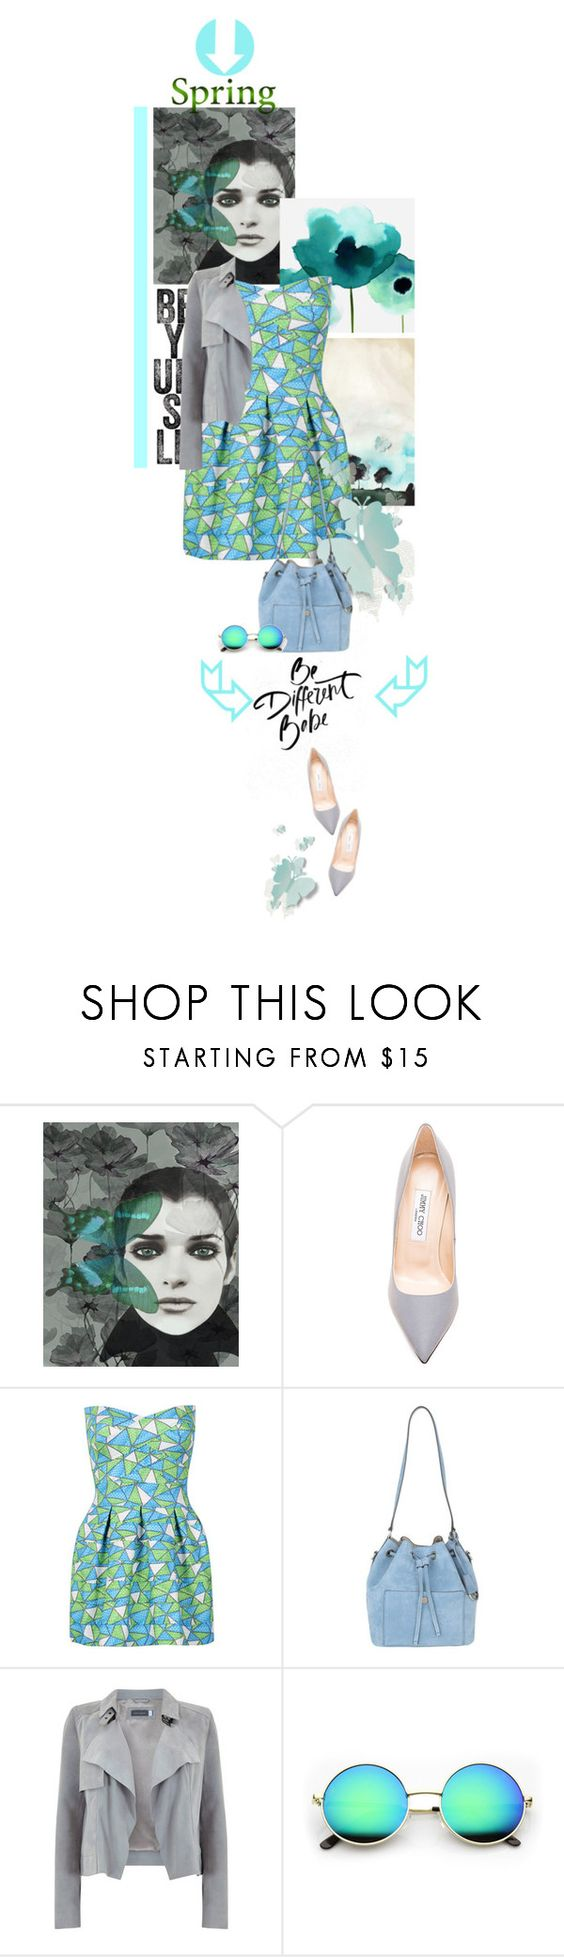 """""""Be different"""" by no-where-girl ❤ liked on Polyvore featuring Jimmy Choo, WithChic, Michael Kors, Mint Velvet and springdress"""